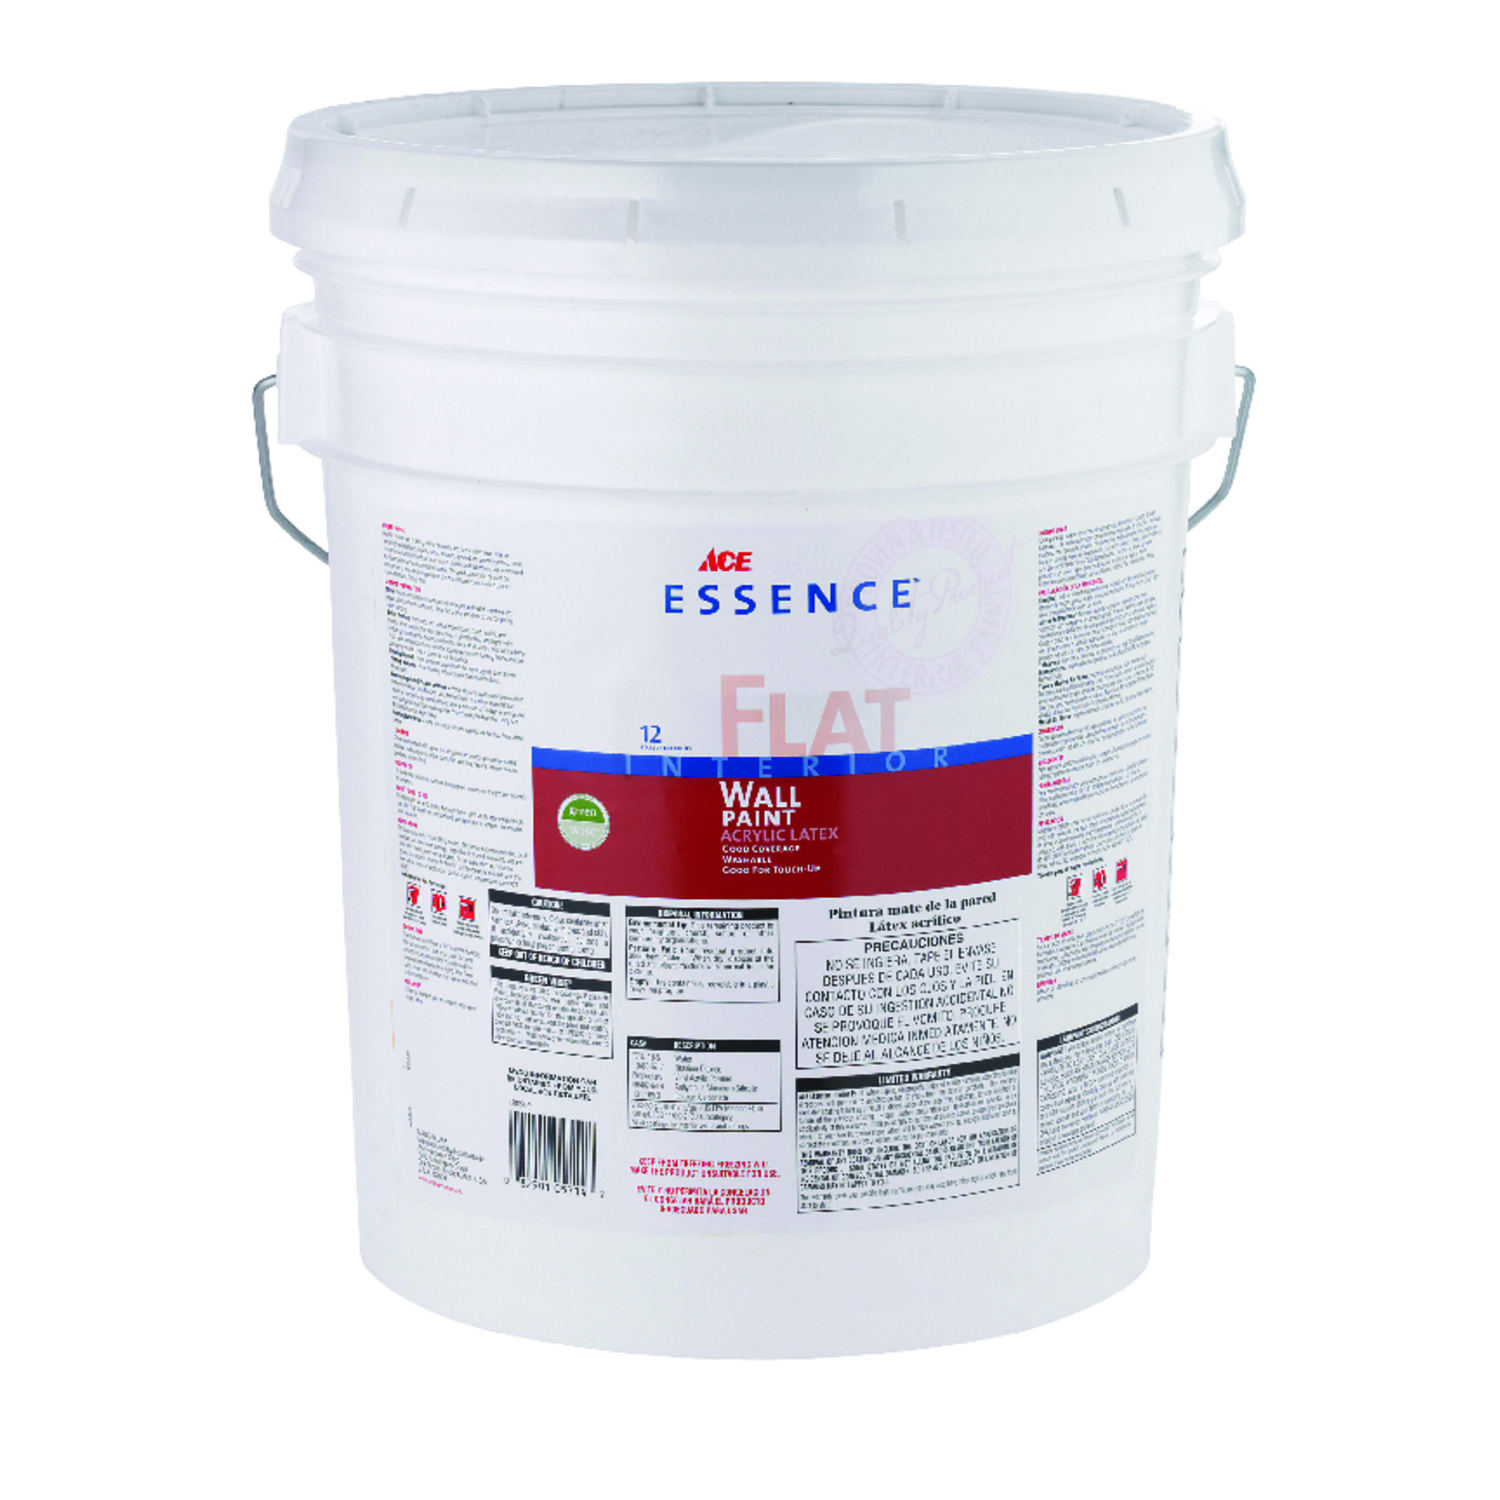 Ace  Essence  High Hiding White  Acylic Latex  5 gal. Paint  Flat